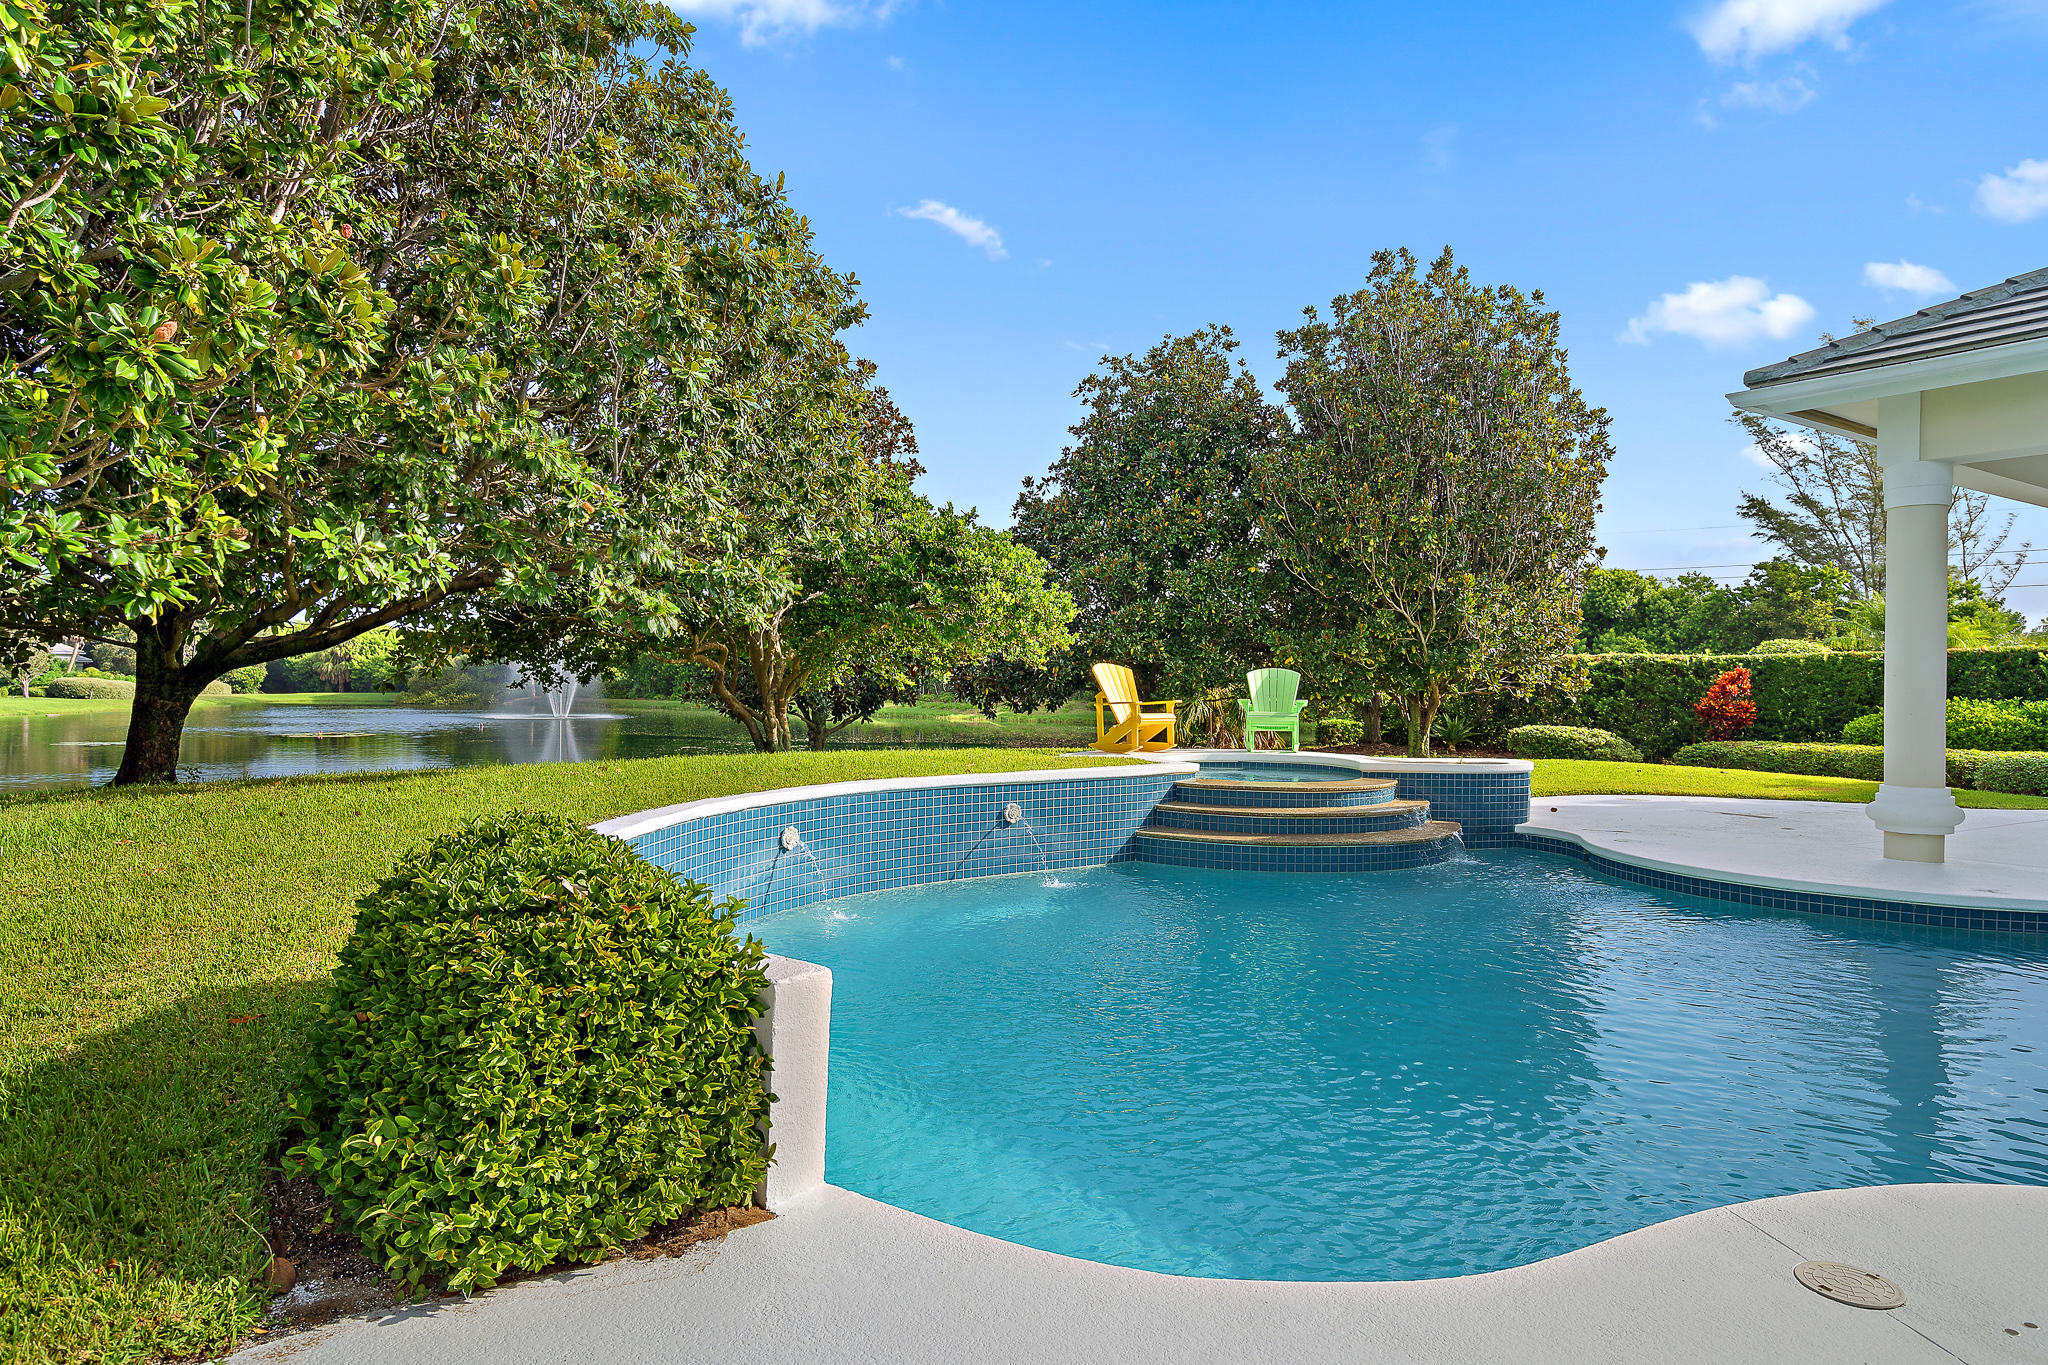 JUPITER HILLS HOMES FOR SALE